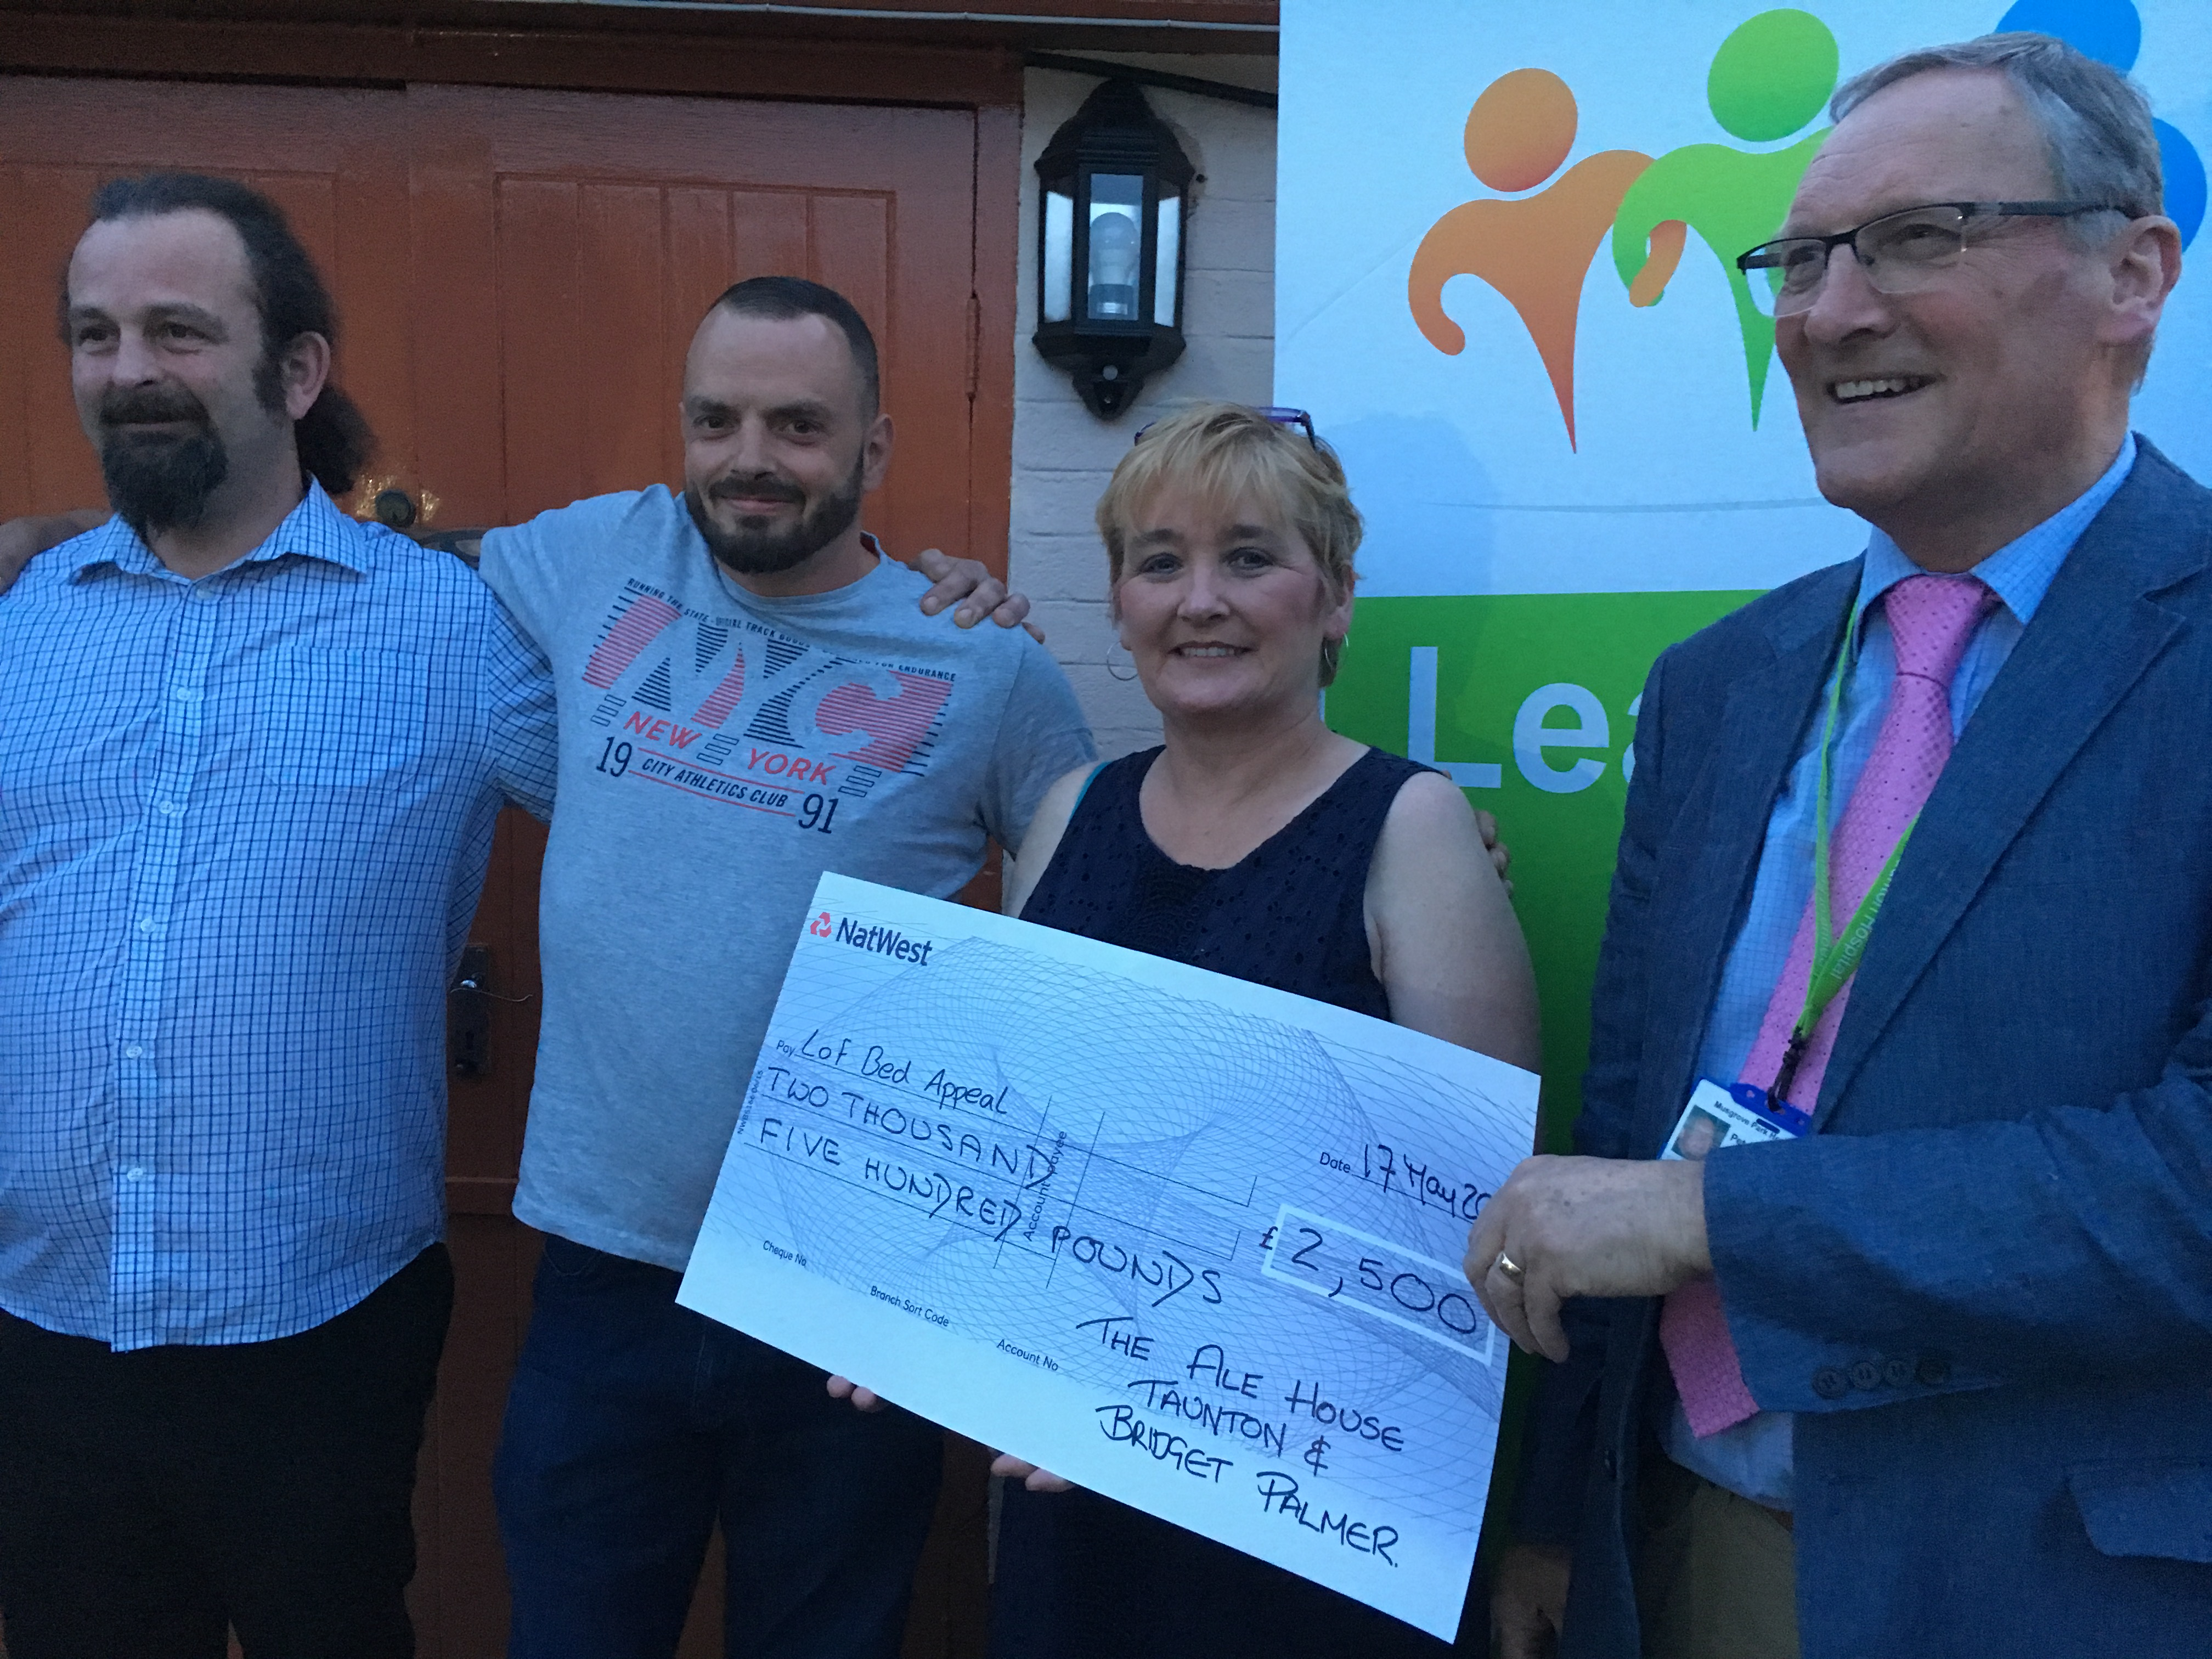 The Ale House raises £2,500 for the Bed Appeal